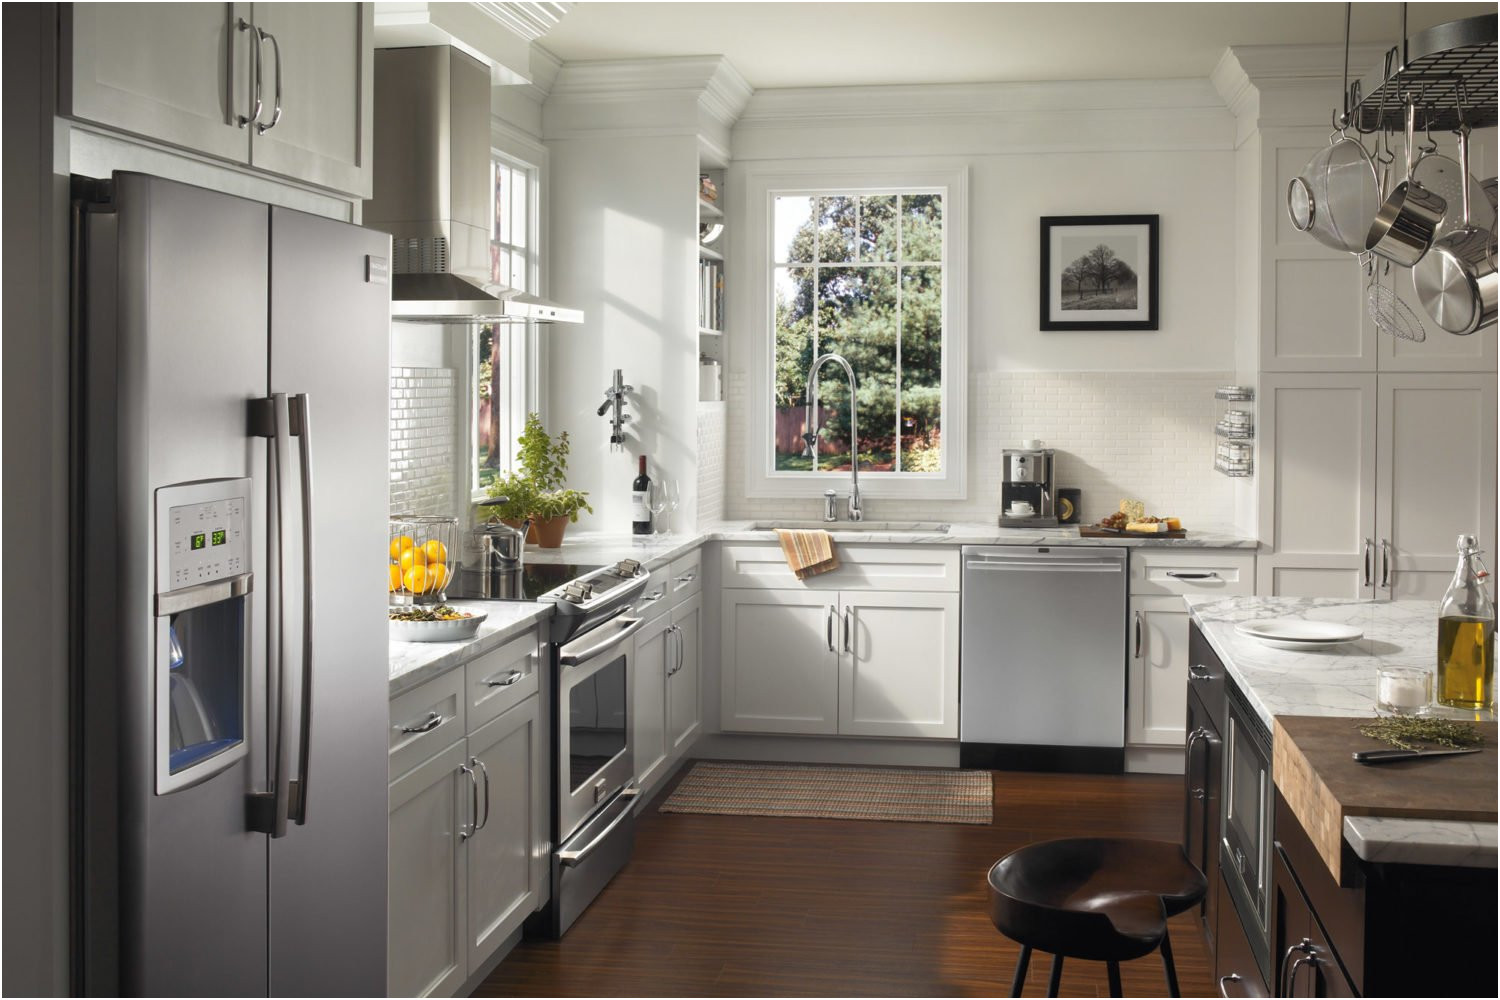 What to Do when Renovating Your Kitchen